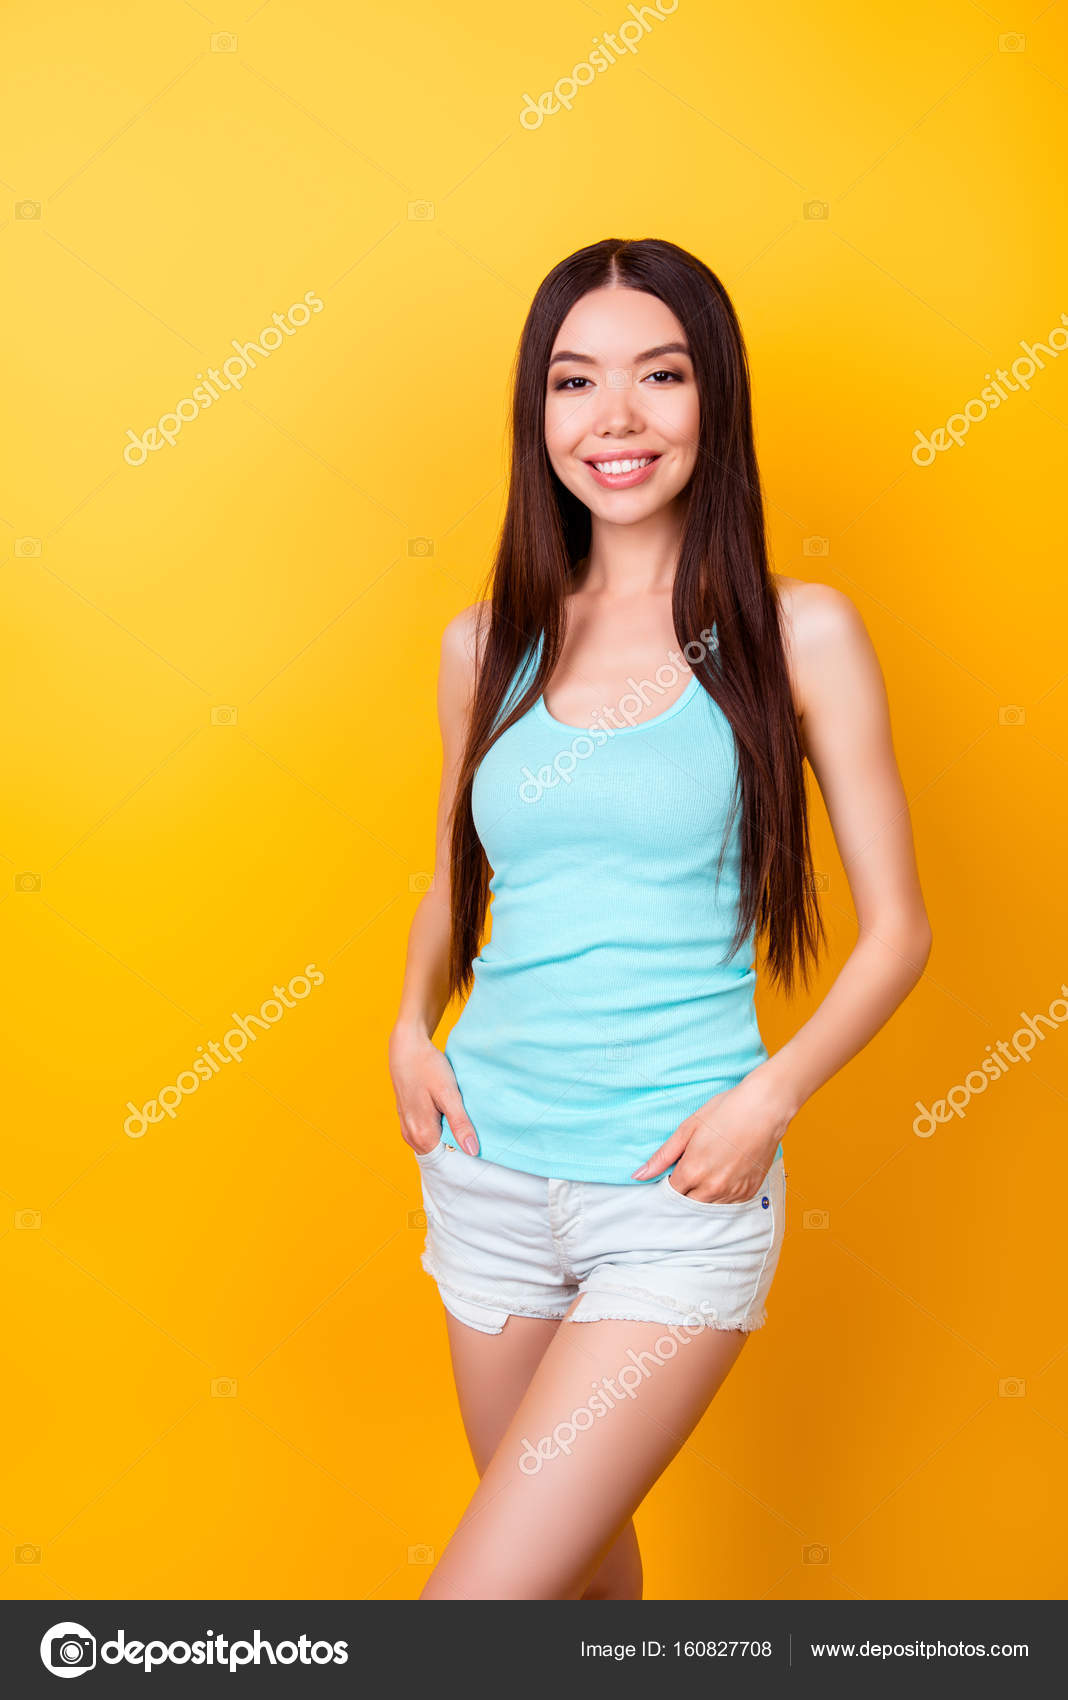 Young cute korean lady in summer outfit standing in pose on